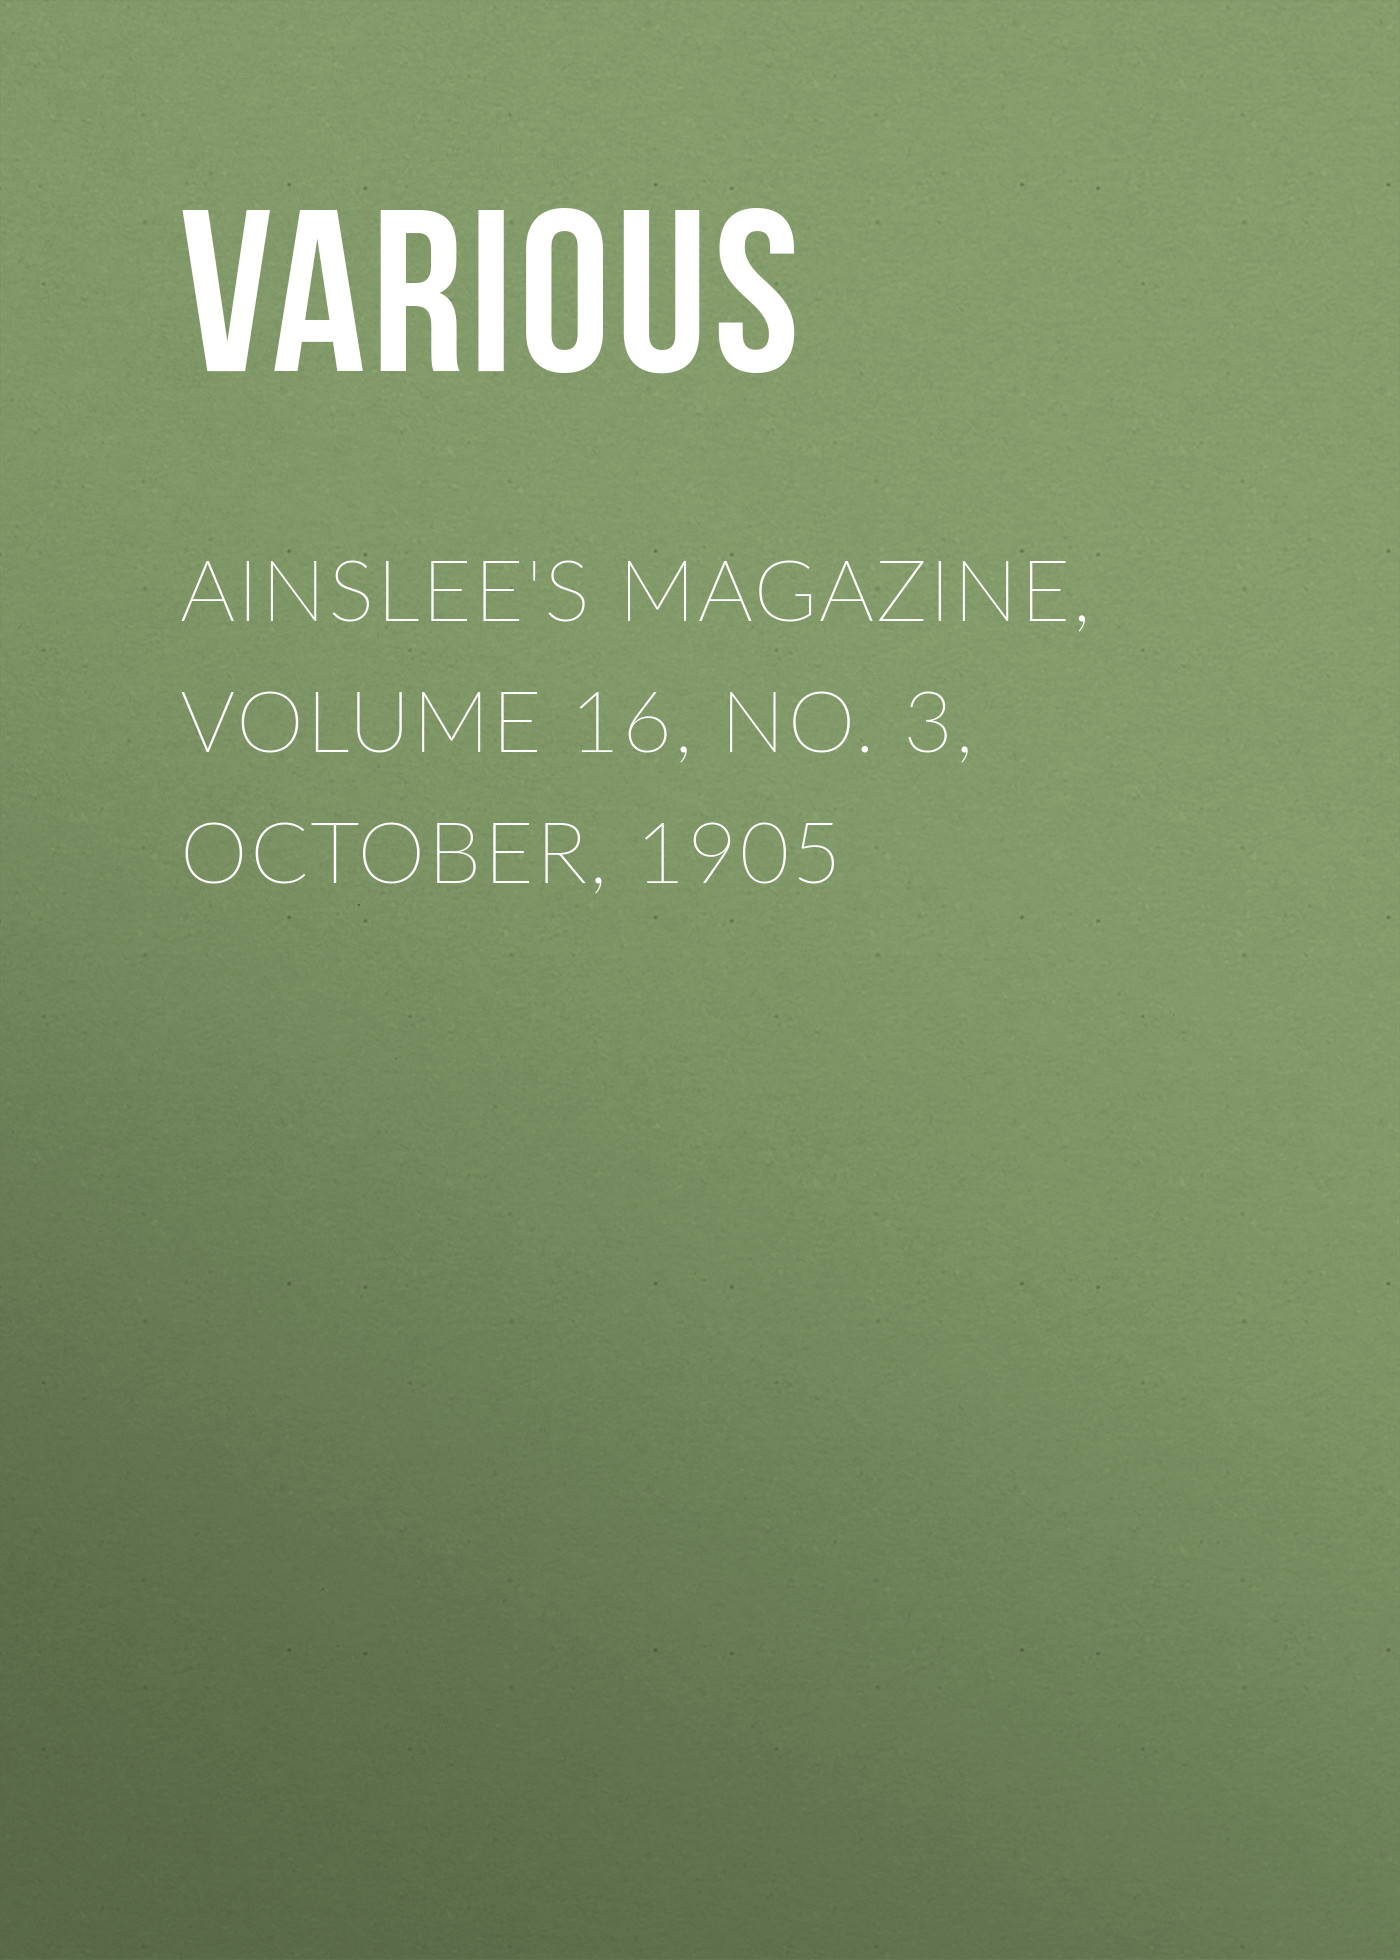 Various Ainslee's magazine, Volume 16, No. 3, October, 1905 various lippincott s magazine october 1885